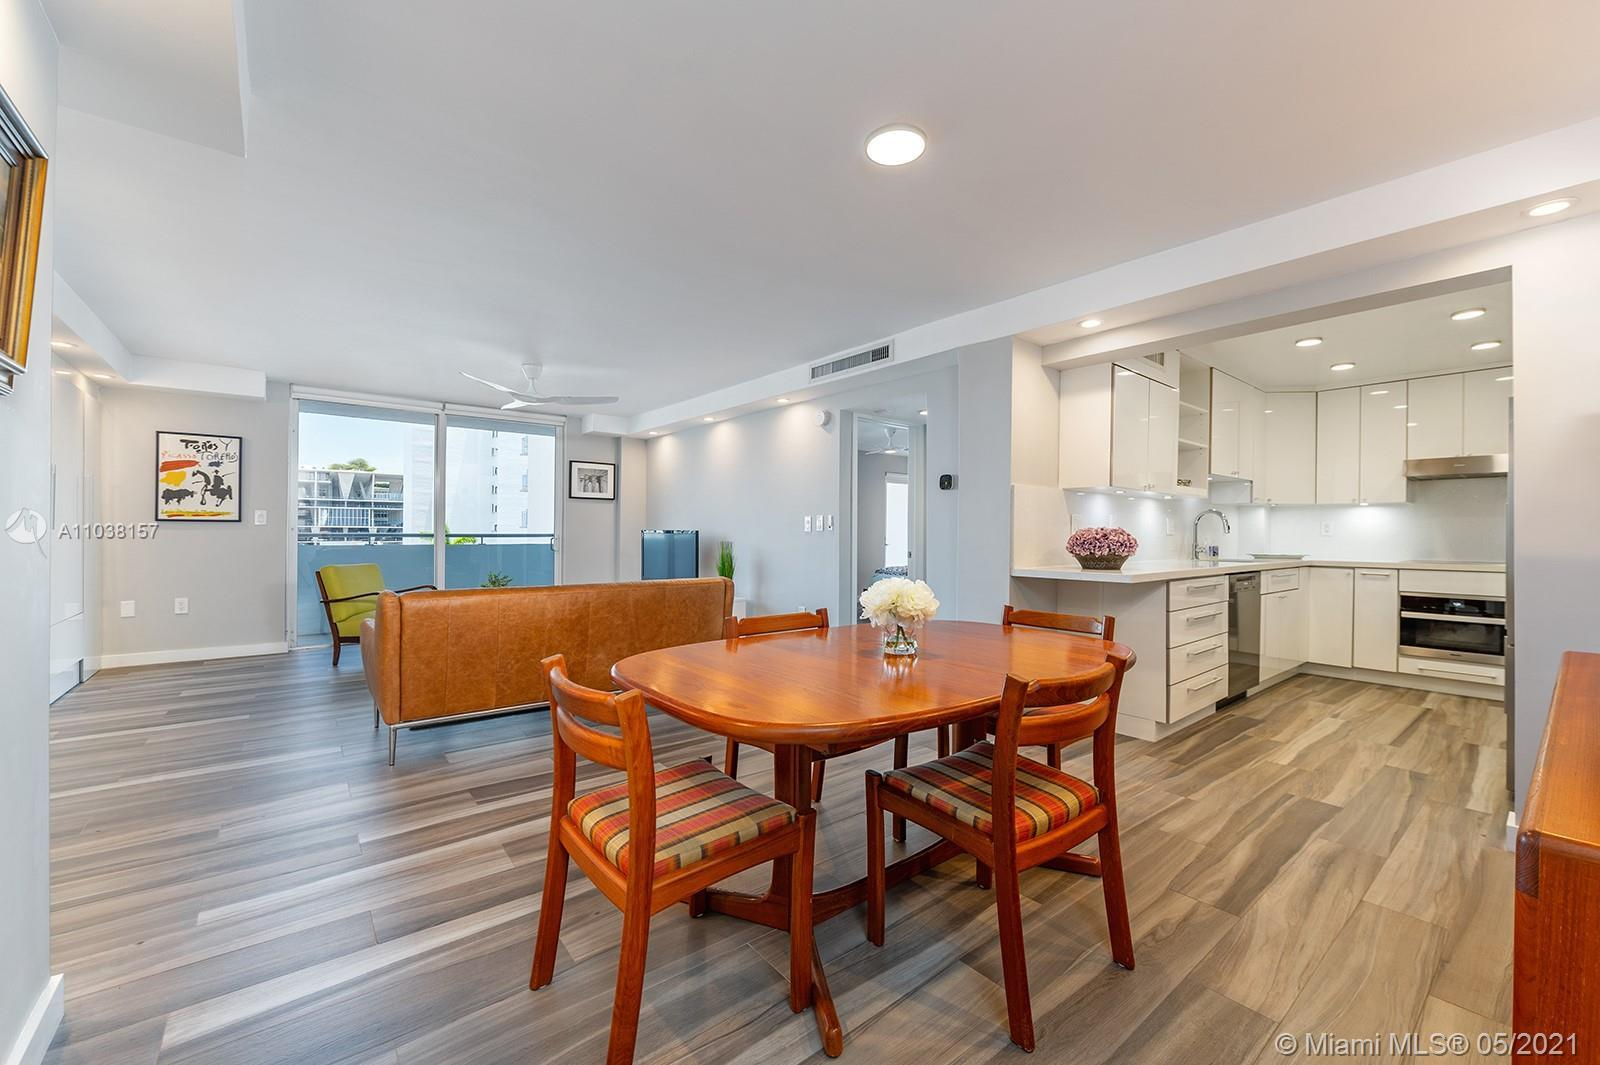 Everything you've been looking for:  Space, light, completely renovated, steps to Lincoln Road!  Ove